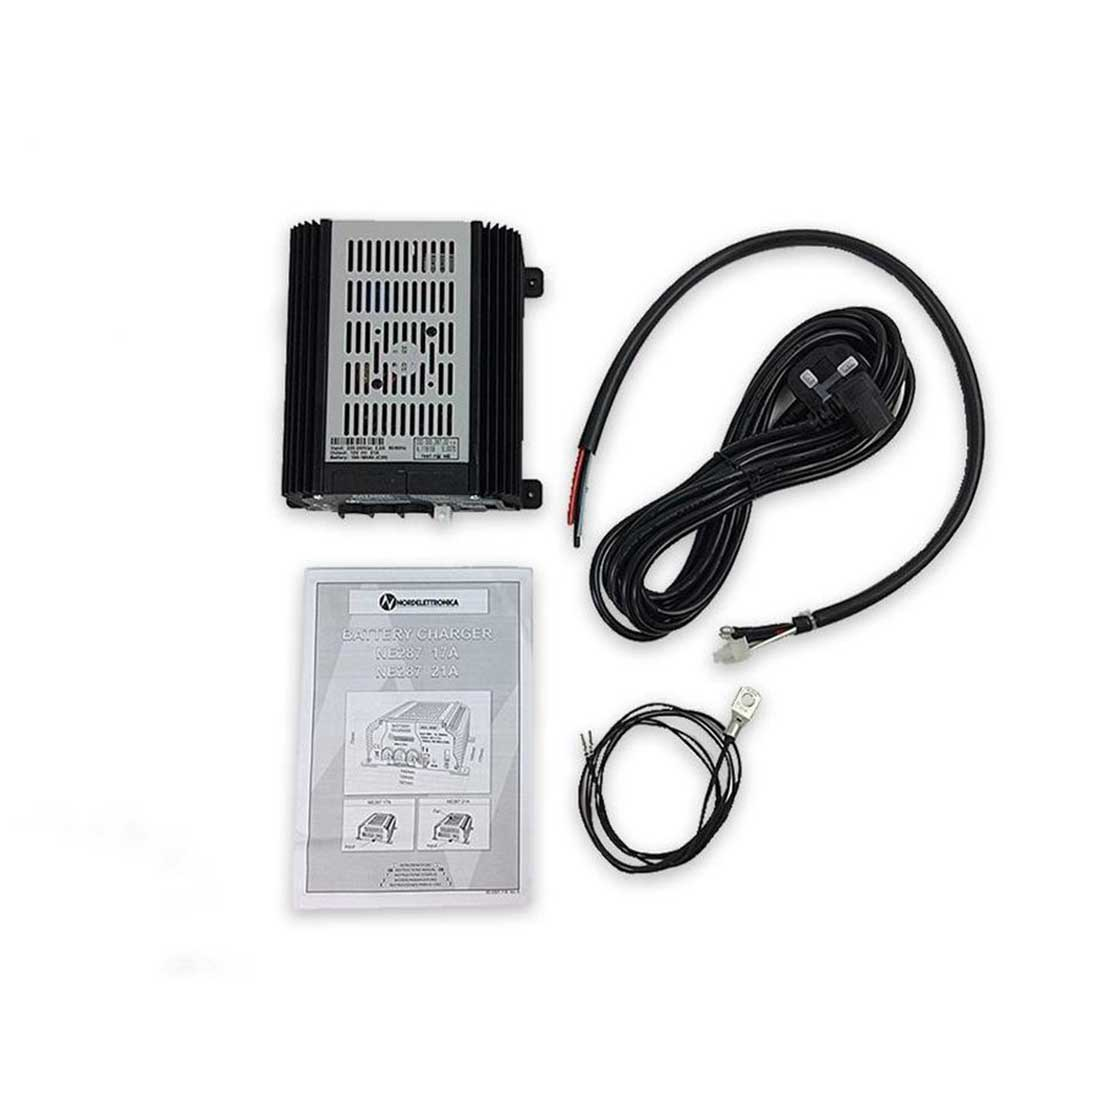 campsite battery charger for motorhome camper and campervan use.